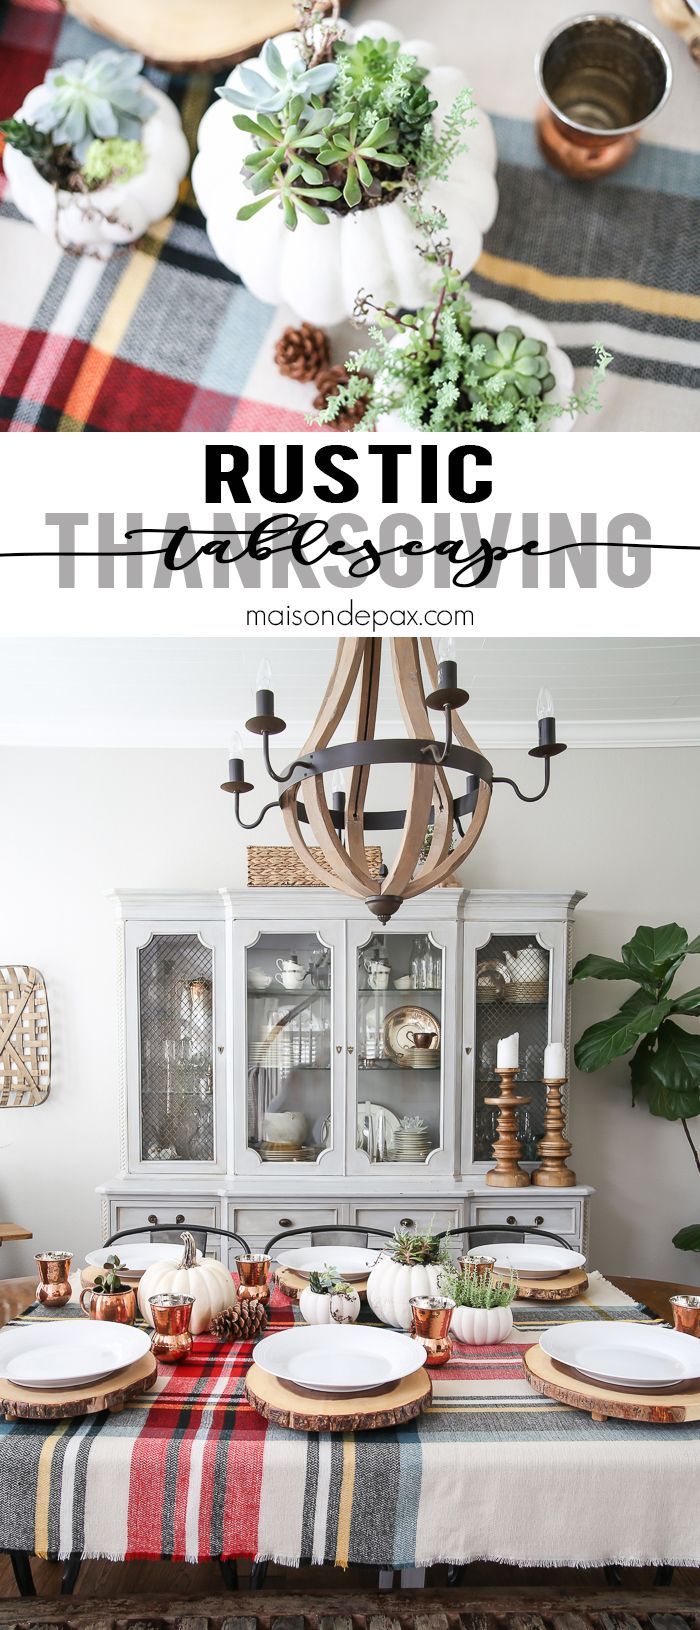 Plaid monograms natural wood ornaments feathers and i couldn t - Be Inspired To Create A Gorgeous Rustic Thanksgiving Tablescape With These Thanksgiving Decorating Ideas